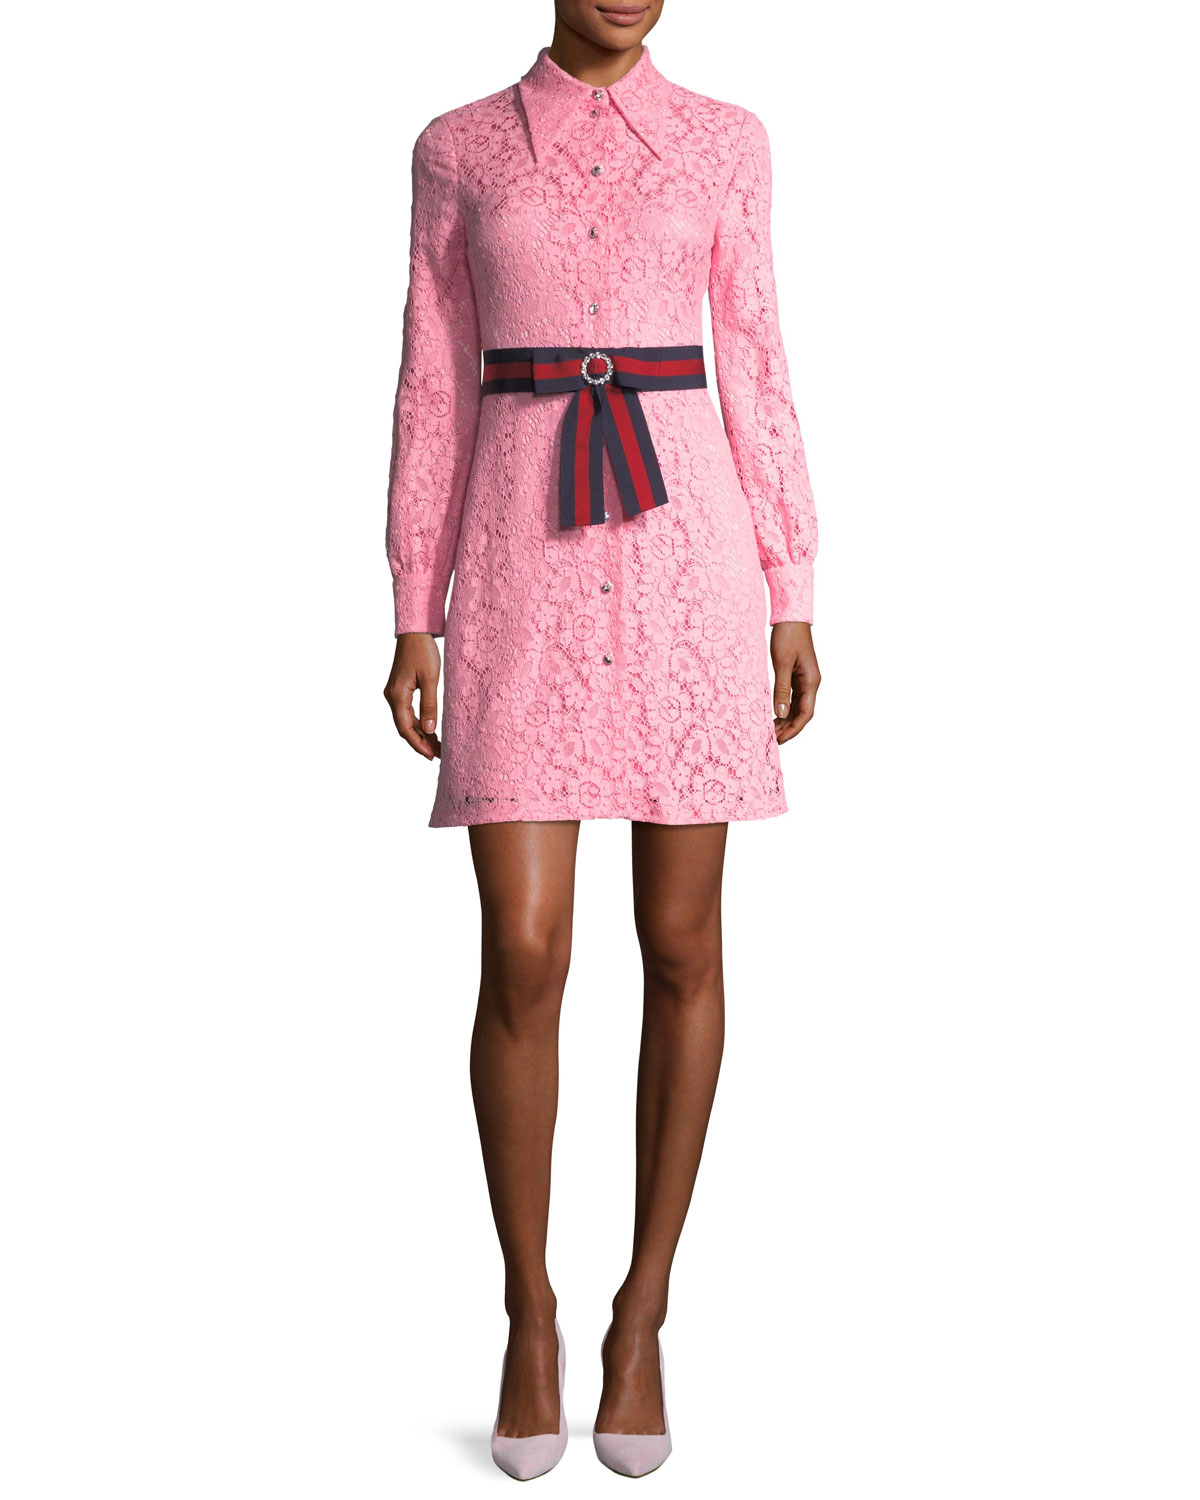 05a389368 Gucci Cluny Lace Dress with Web Waistband, Pink | Neiman Marcus